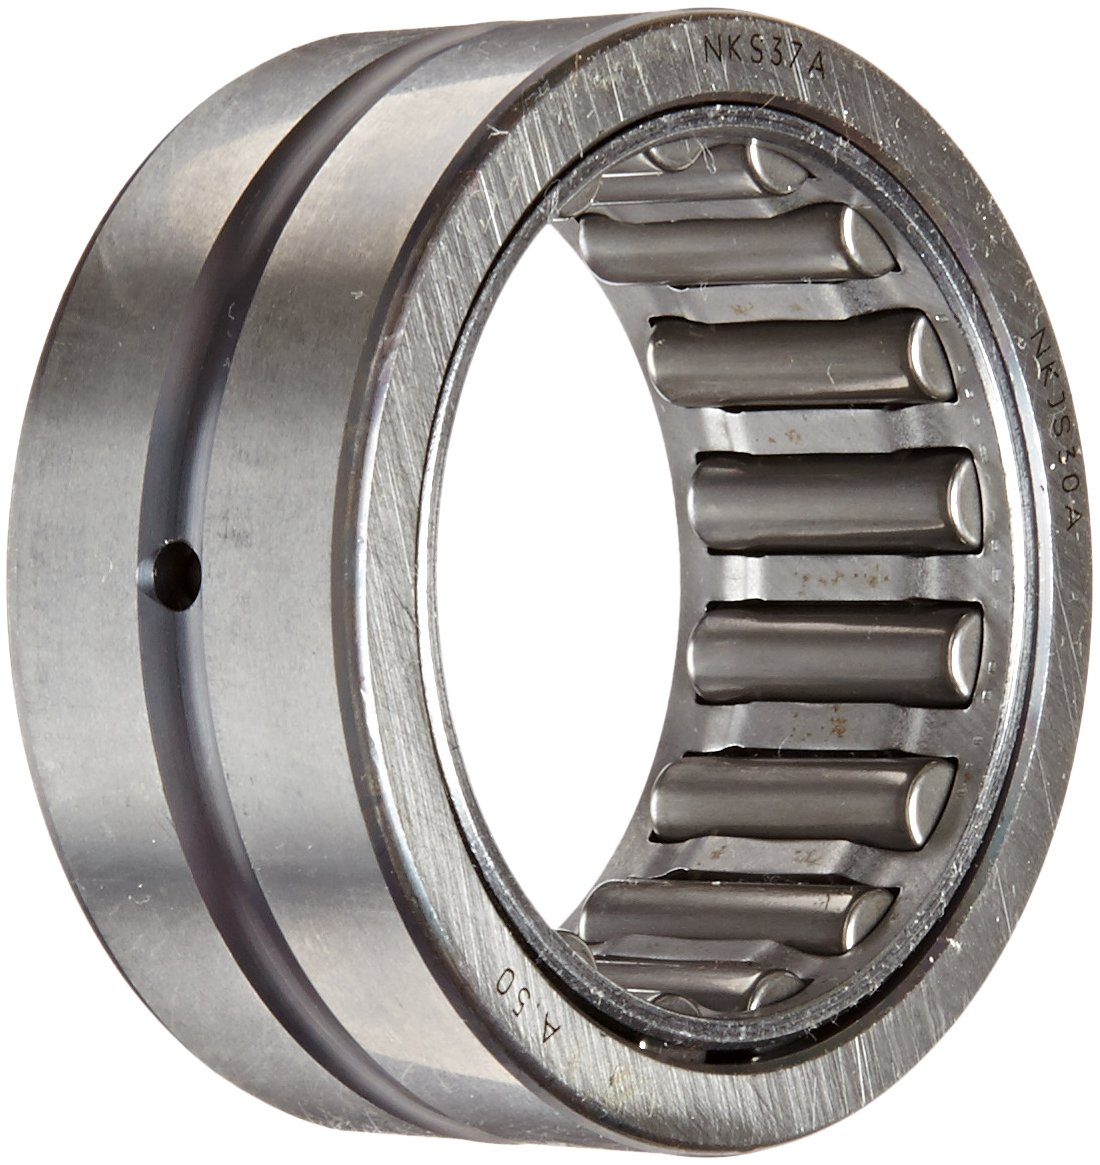 Metric Open 22mm Width 12000rpm Maximum Rotational Speed Outer Ring and Roller 52mm OD 37mm ID Koyo NKS37A Needle Roller Bearing Oil Hole Steel Cage